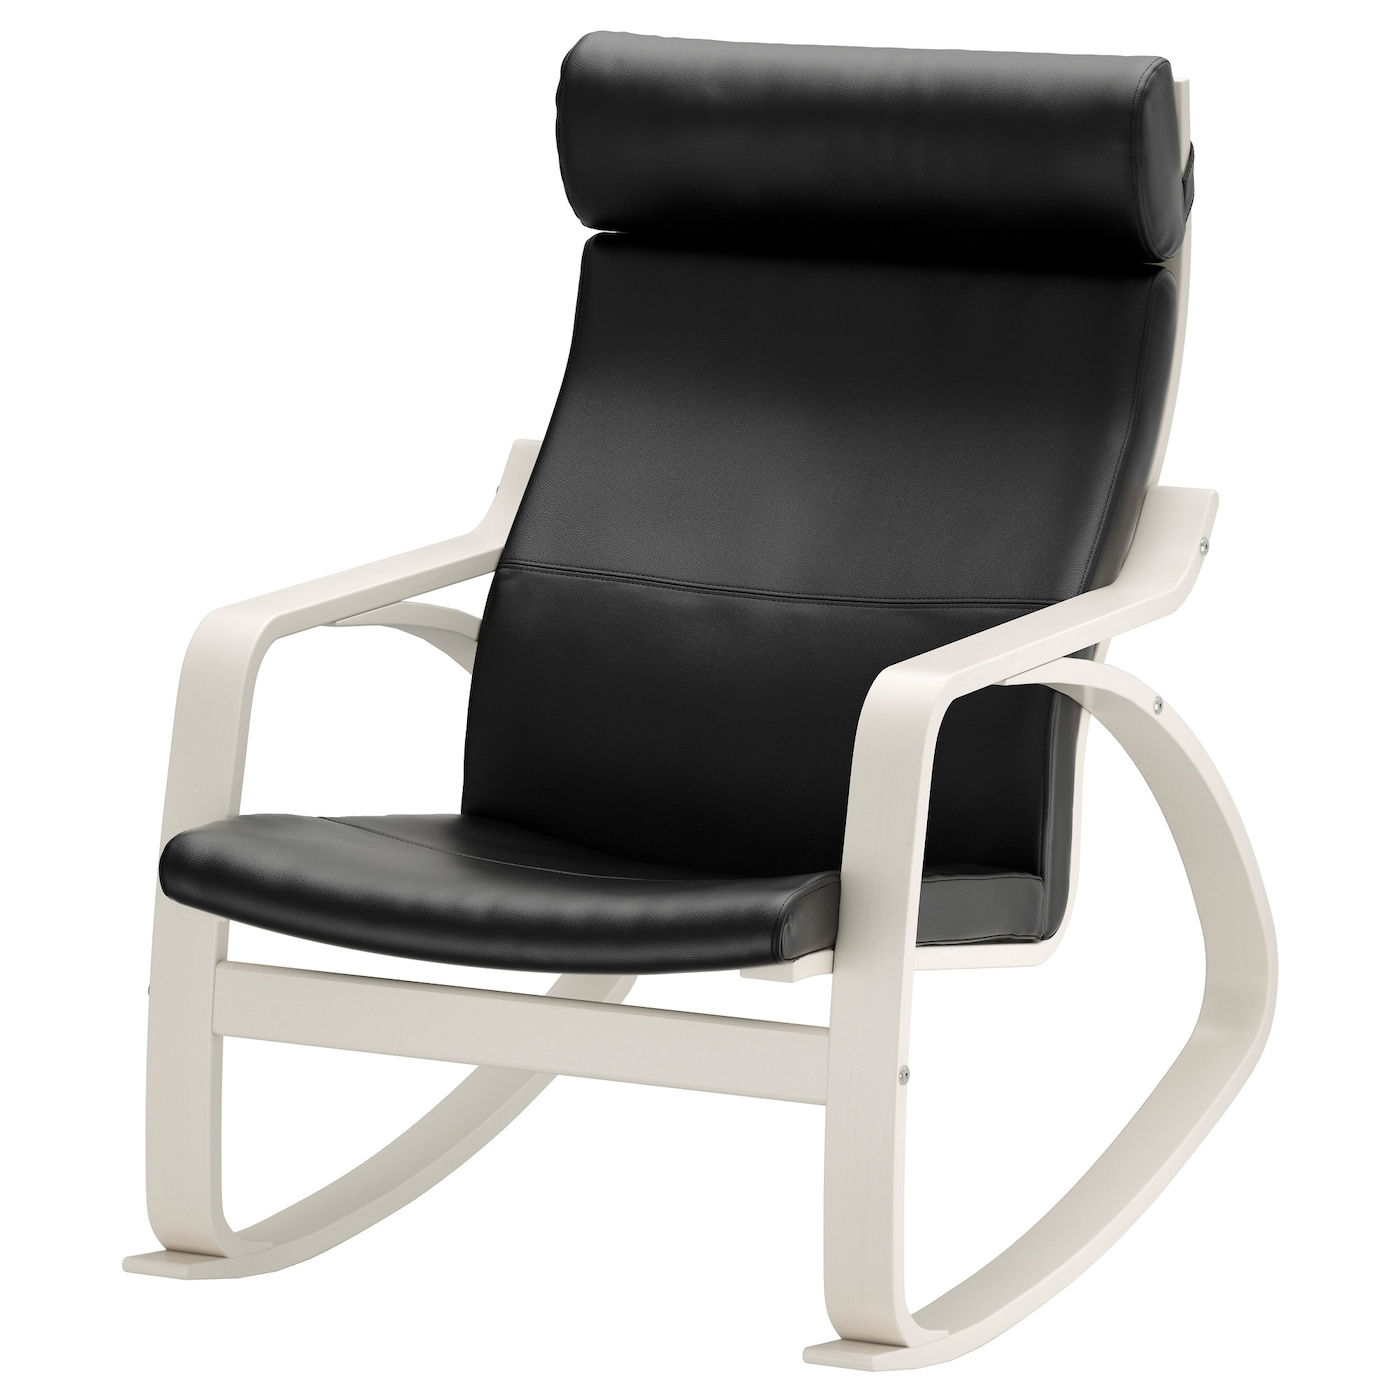 IKEA POÄNG rocking-chair Soft, hardwearing and easy care leather, which ages gracefully.